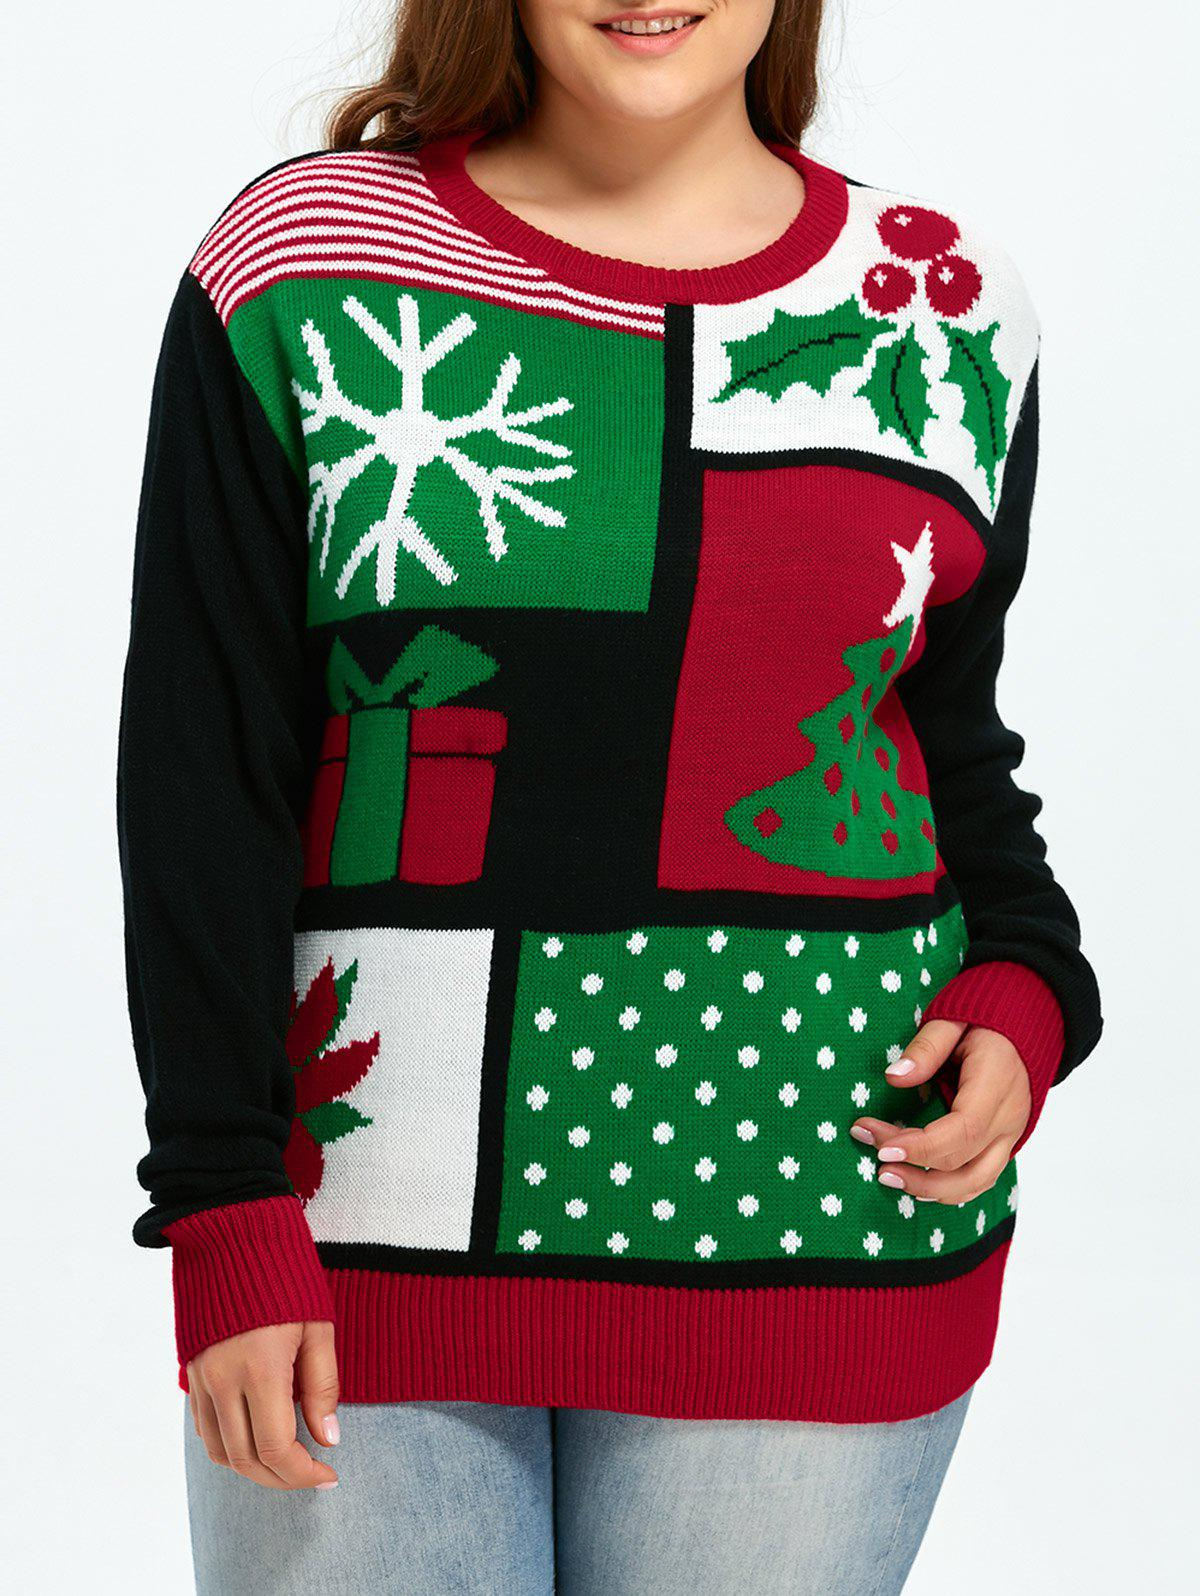 Christmas Tree Snowflake Pattern Cute Plus Size SweaterWOMEN<br><br>Size: 3XL; Color: COLORMIX; Type: Pullovers; Material: Cotton,Spandex; Sleeve Length: Full; Collar: Round Neck; Technics: Computer Knitted; Style: Casual; Season: Fall,Spring,Winter; Pattern Type: Striped; Weight: 0.550kg; Package Contents: 1 x Sweater;